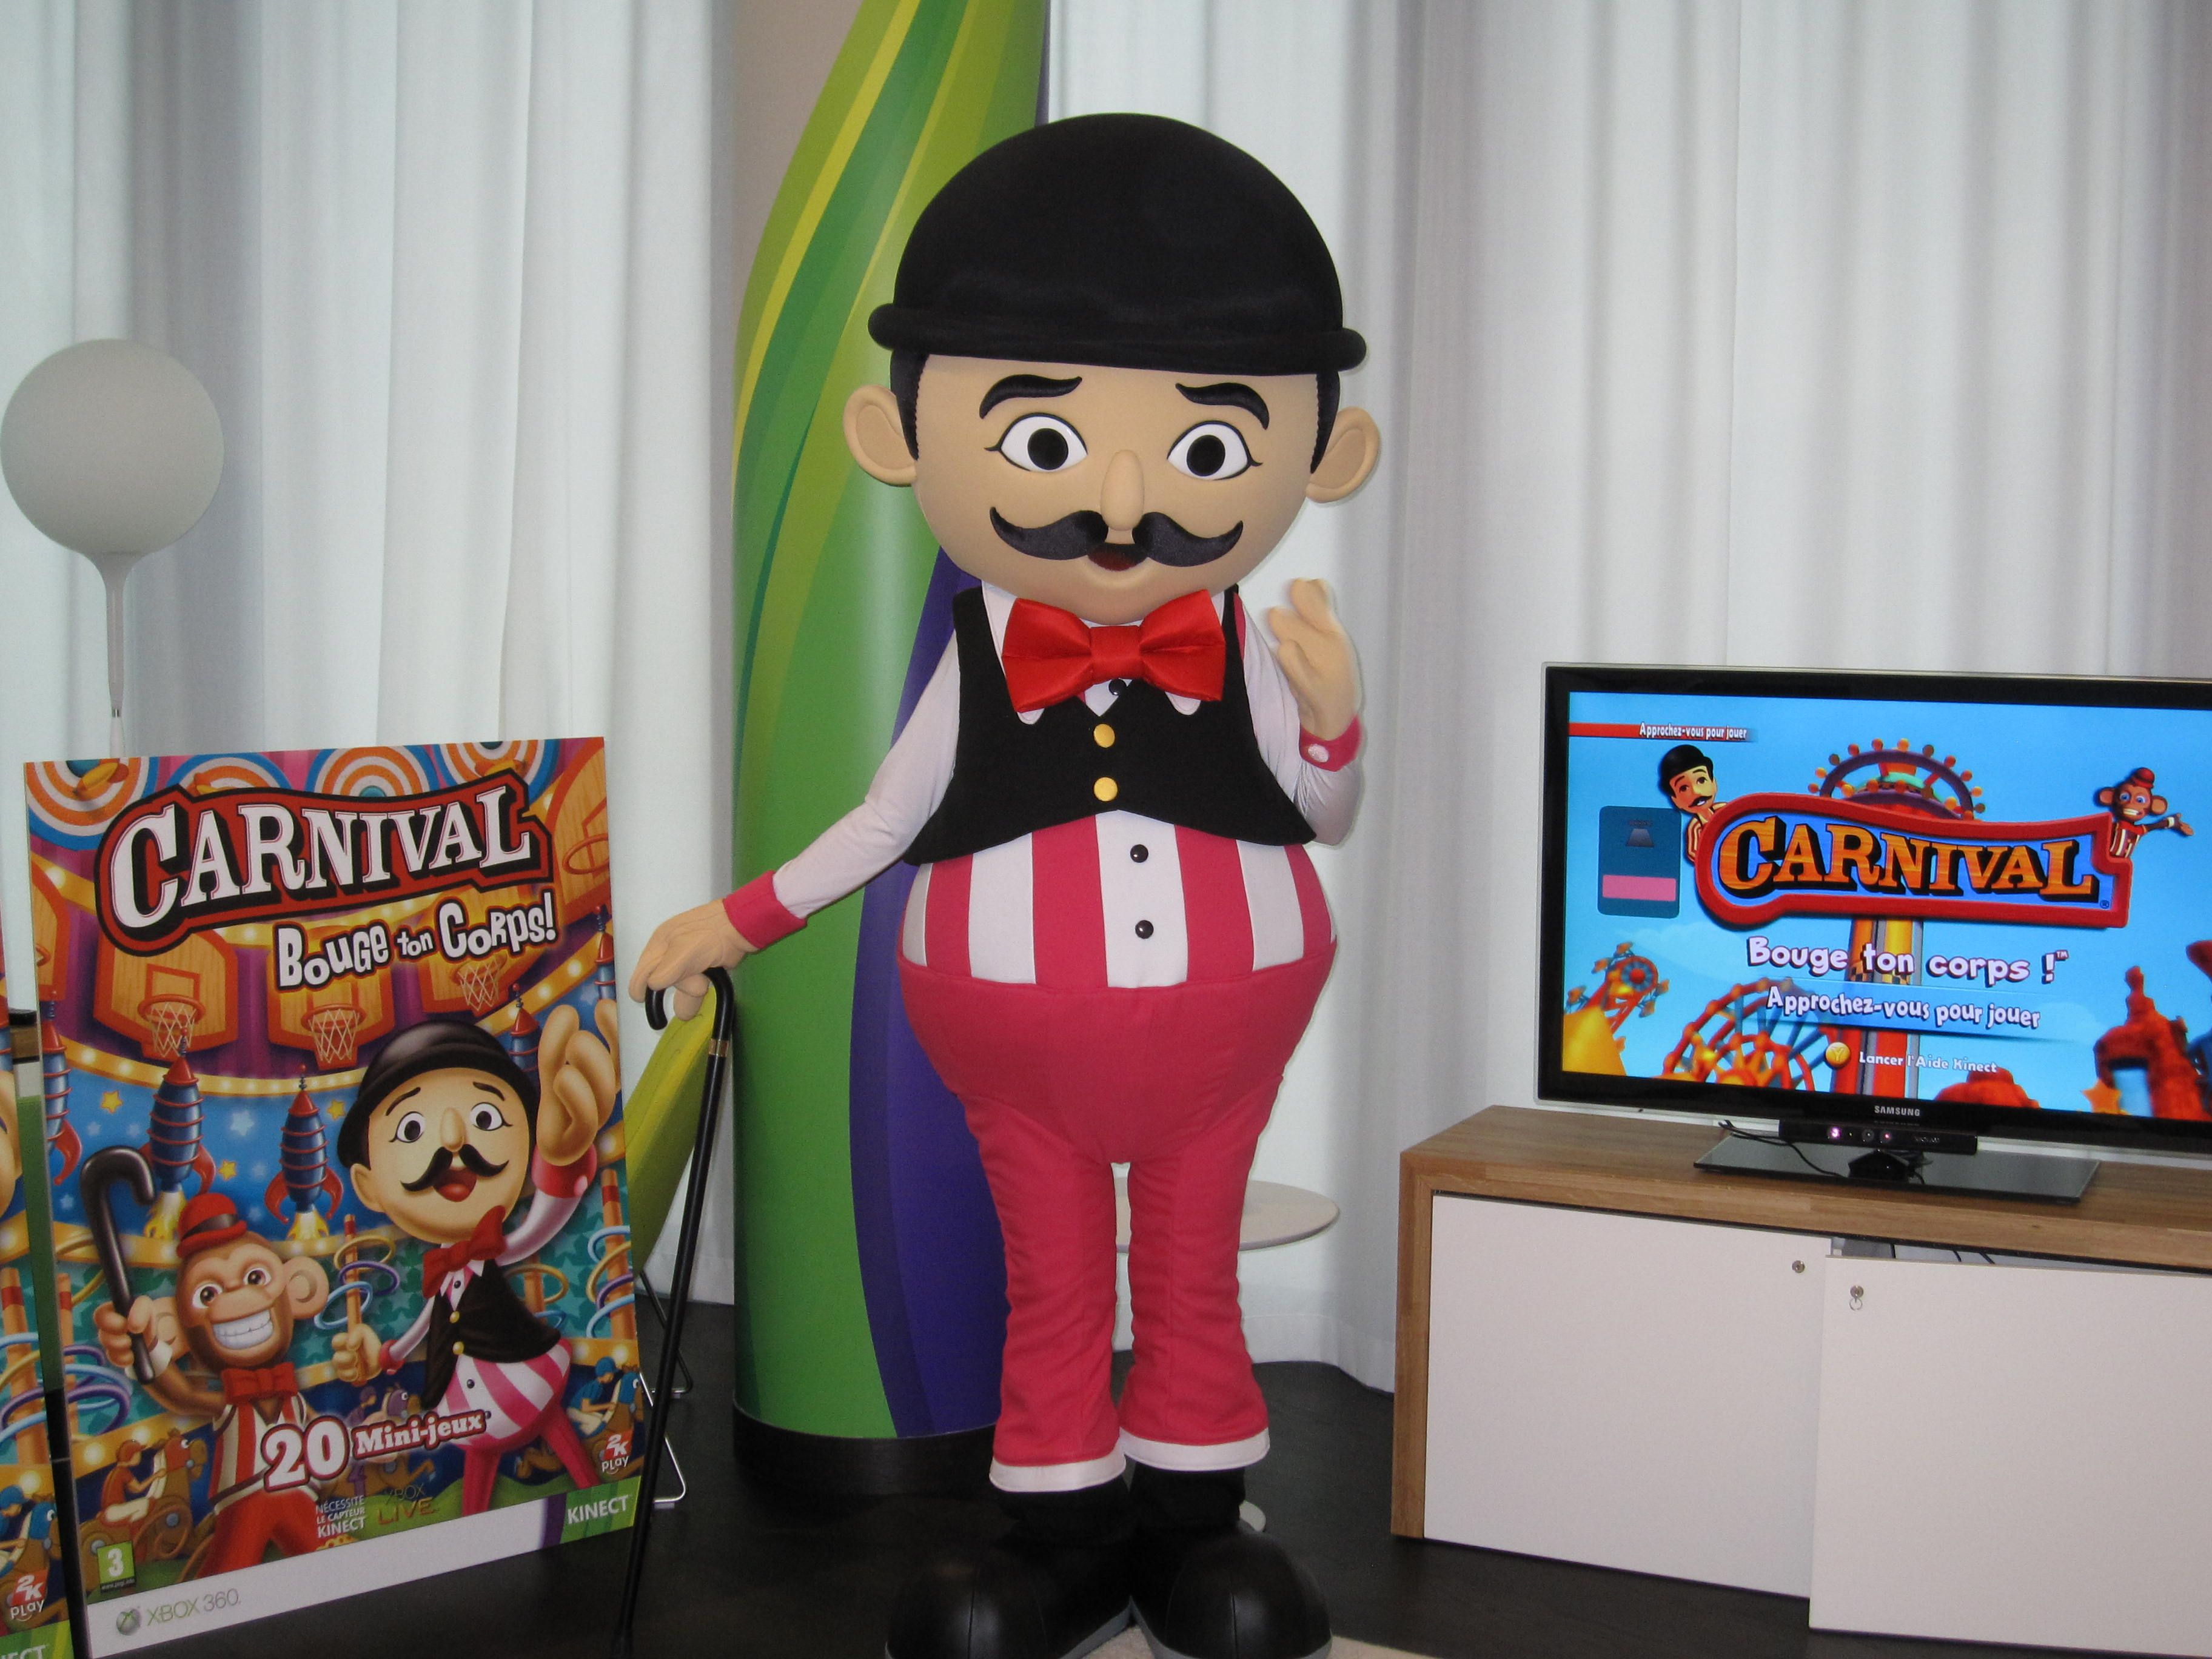 Barker carnival games mascot costume character with